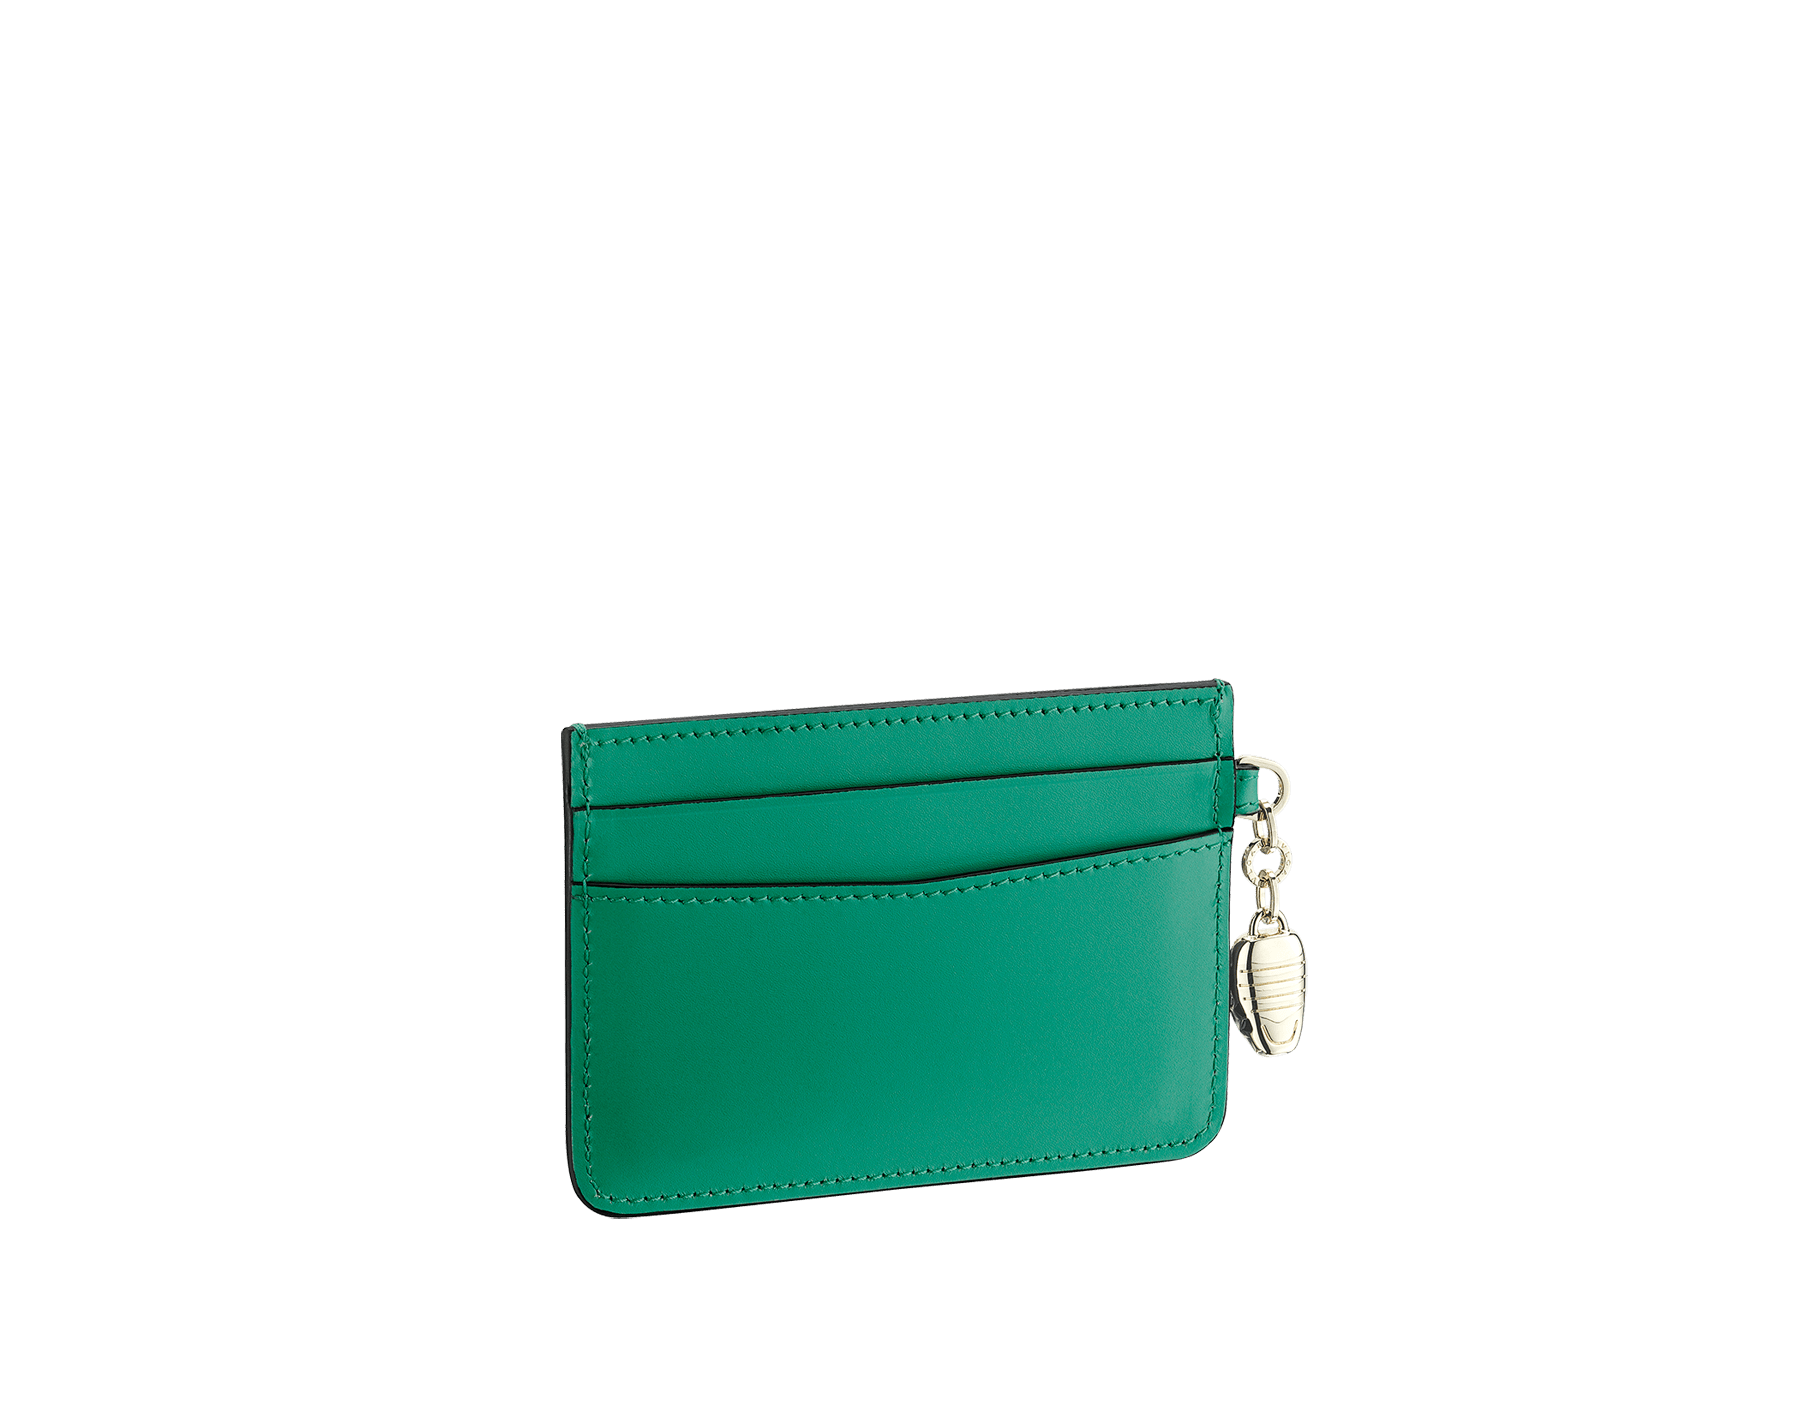 Serpenti Forever card holder in emerald green calf leather. Iconic snakehead charm in black and white agate enamel, with green emerald enamel eyes. 282019 image 2